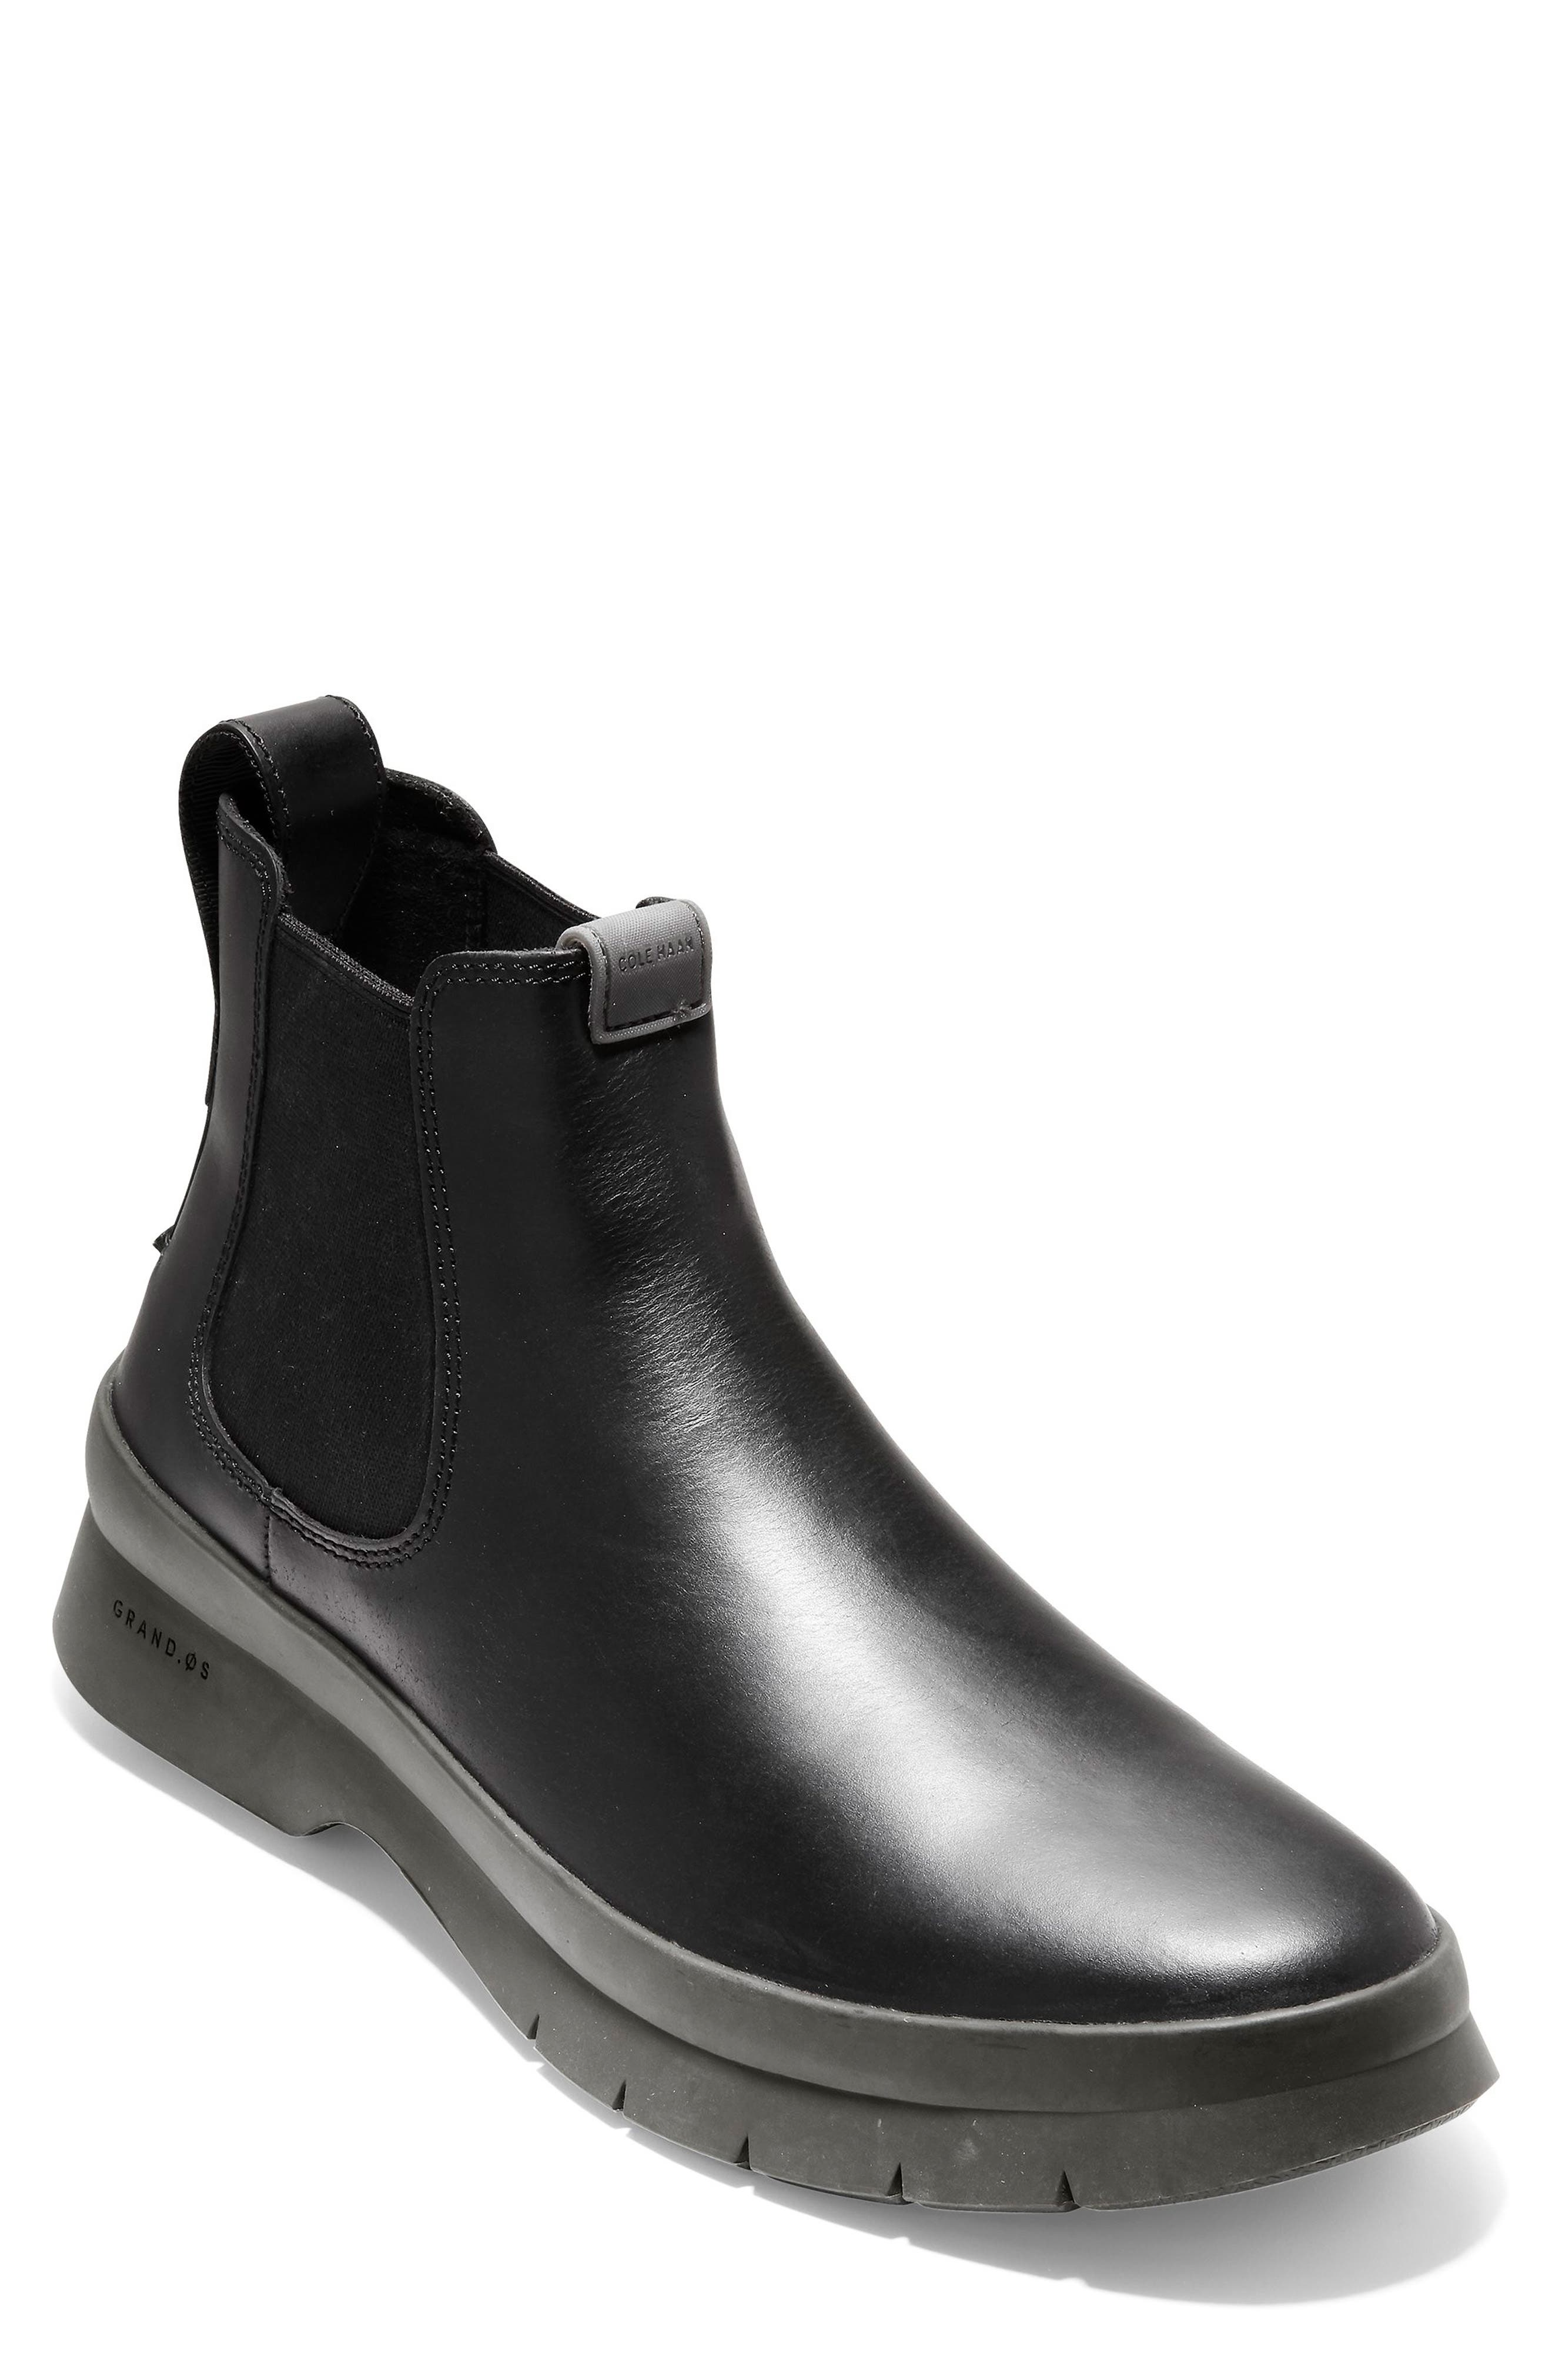 Pinch Utility Waterproof Chelsea Boot,                             Main thumbnail 1, color,                             BLACK/ HAZEL LEATHER